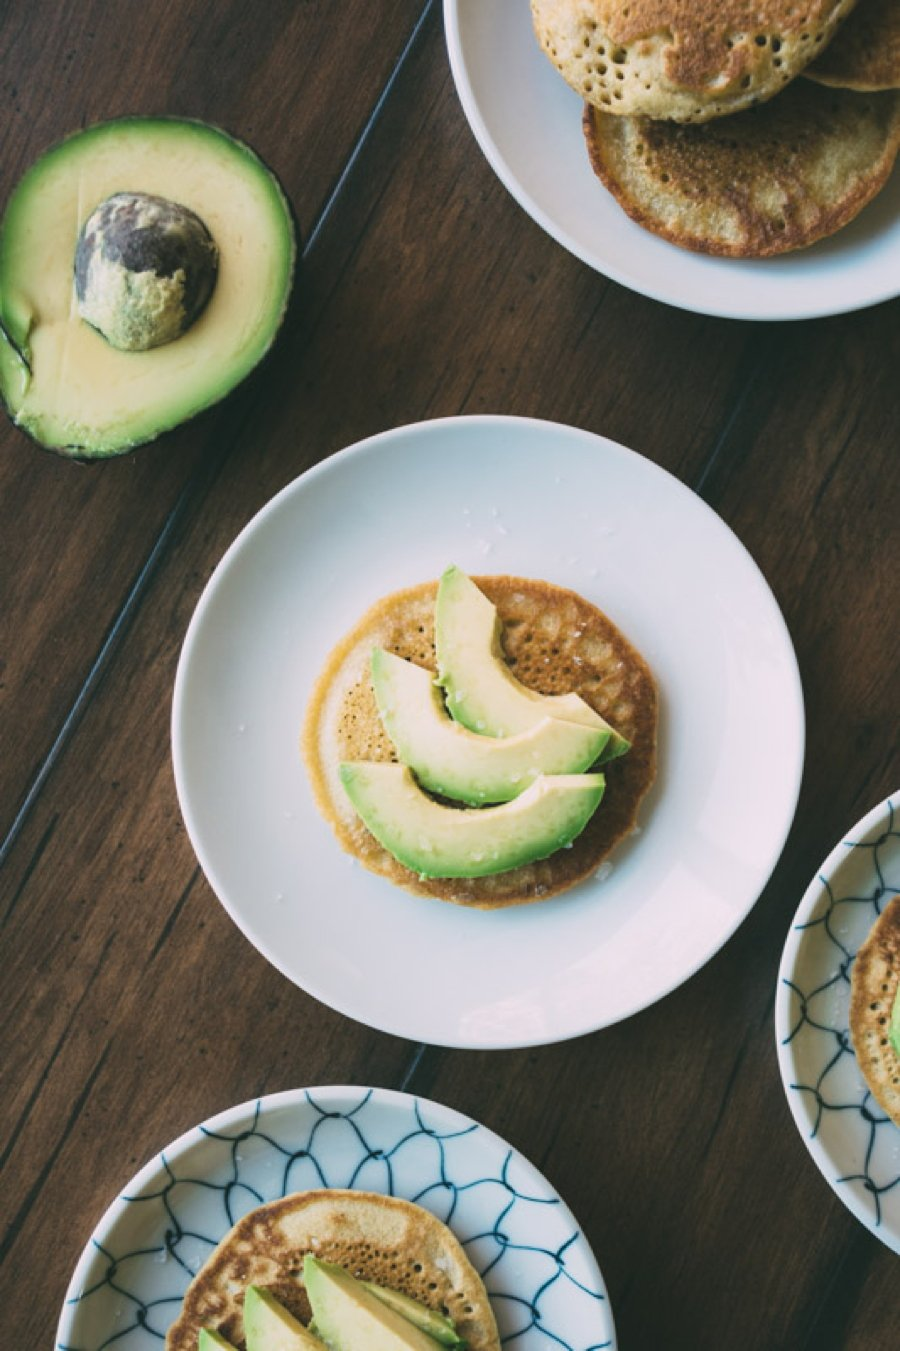 roasted-carrot-picnic-salad-with-sprouted-garbanzo-bean-pancakes-and-avocado